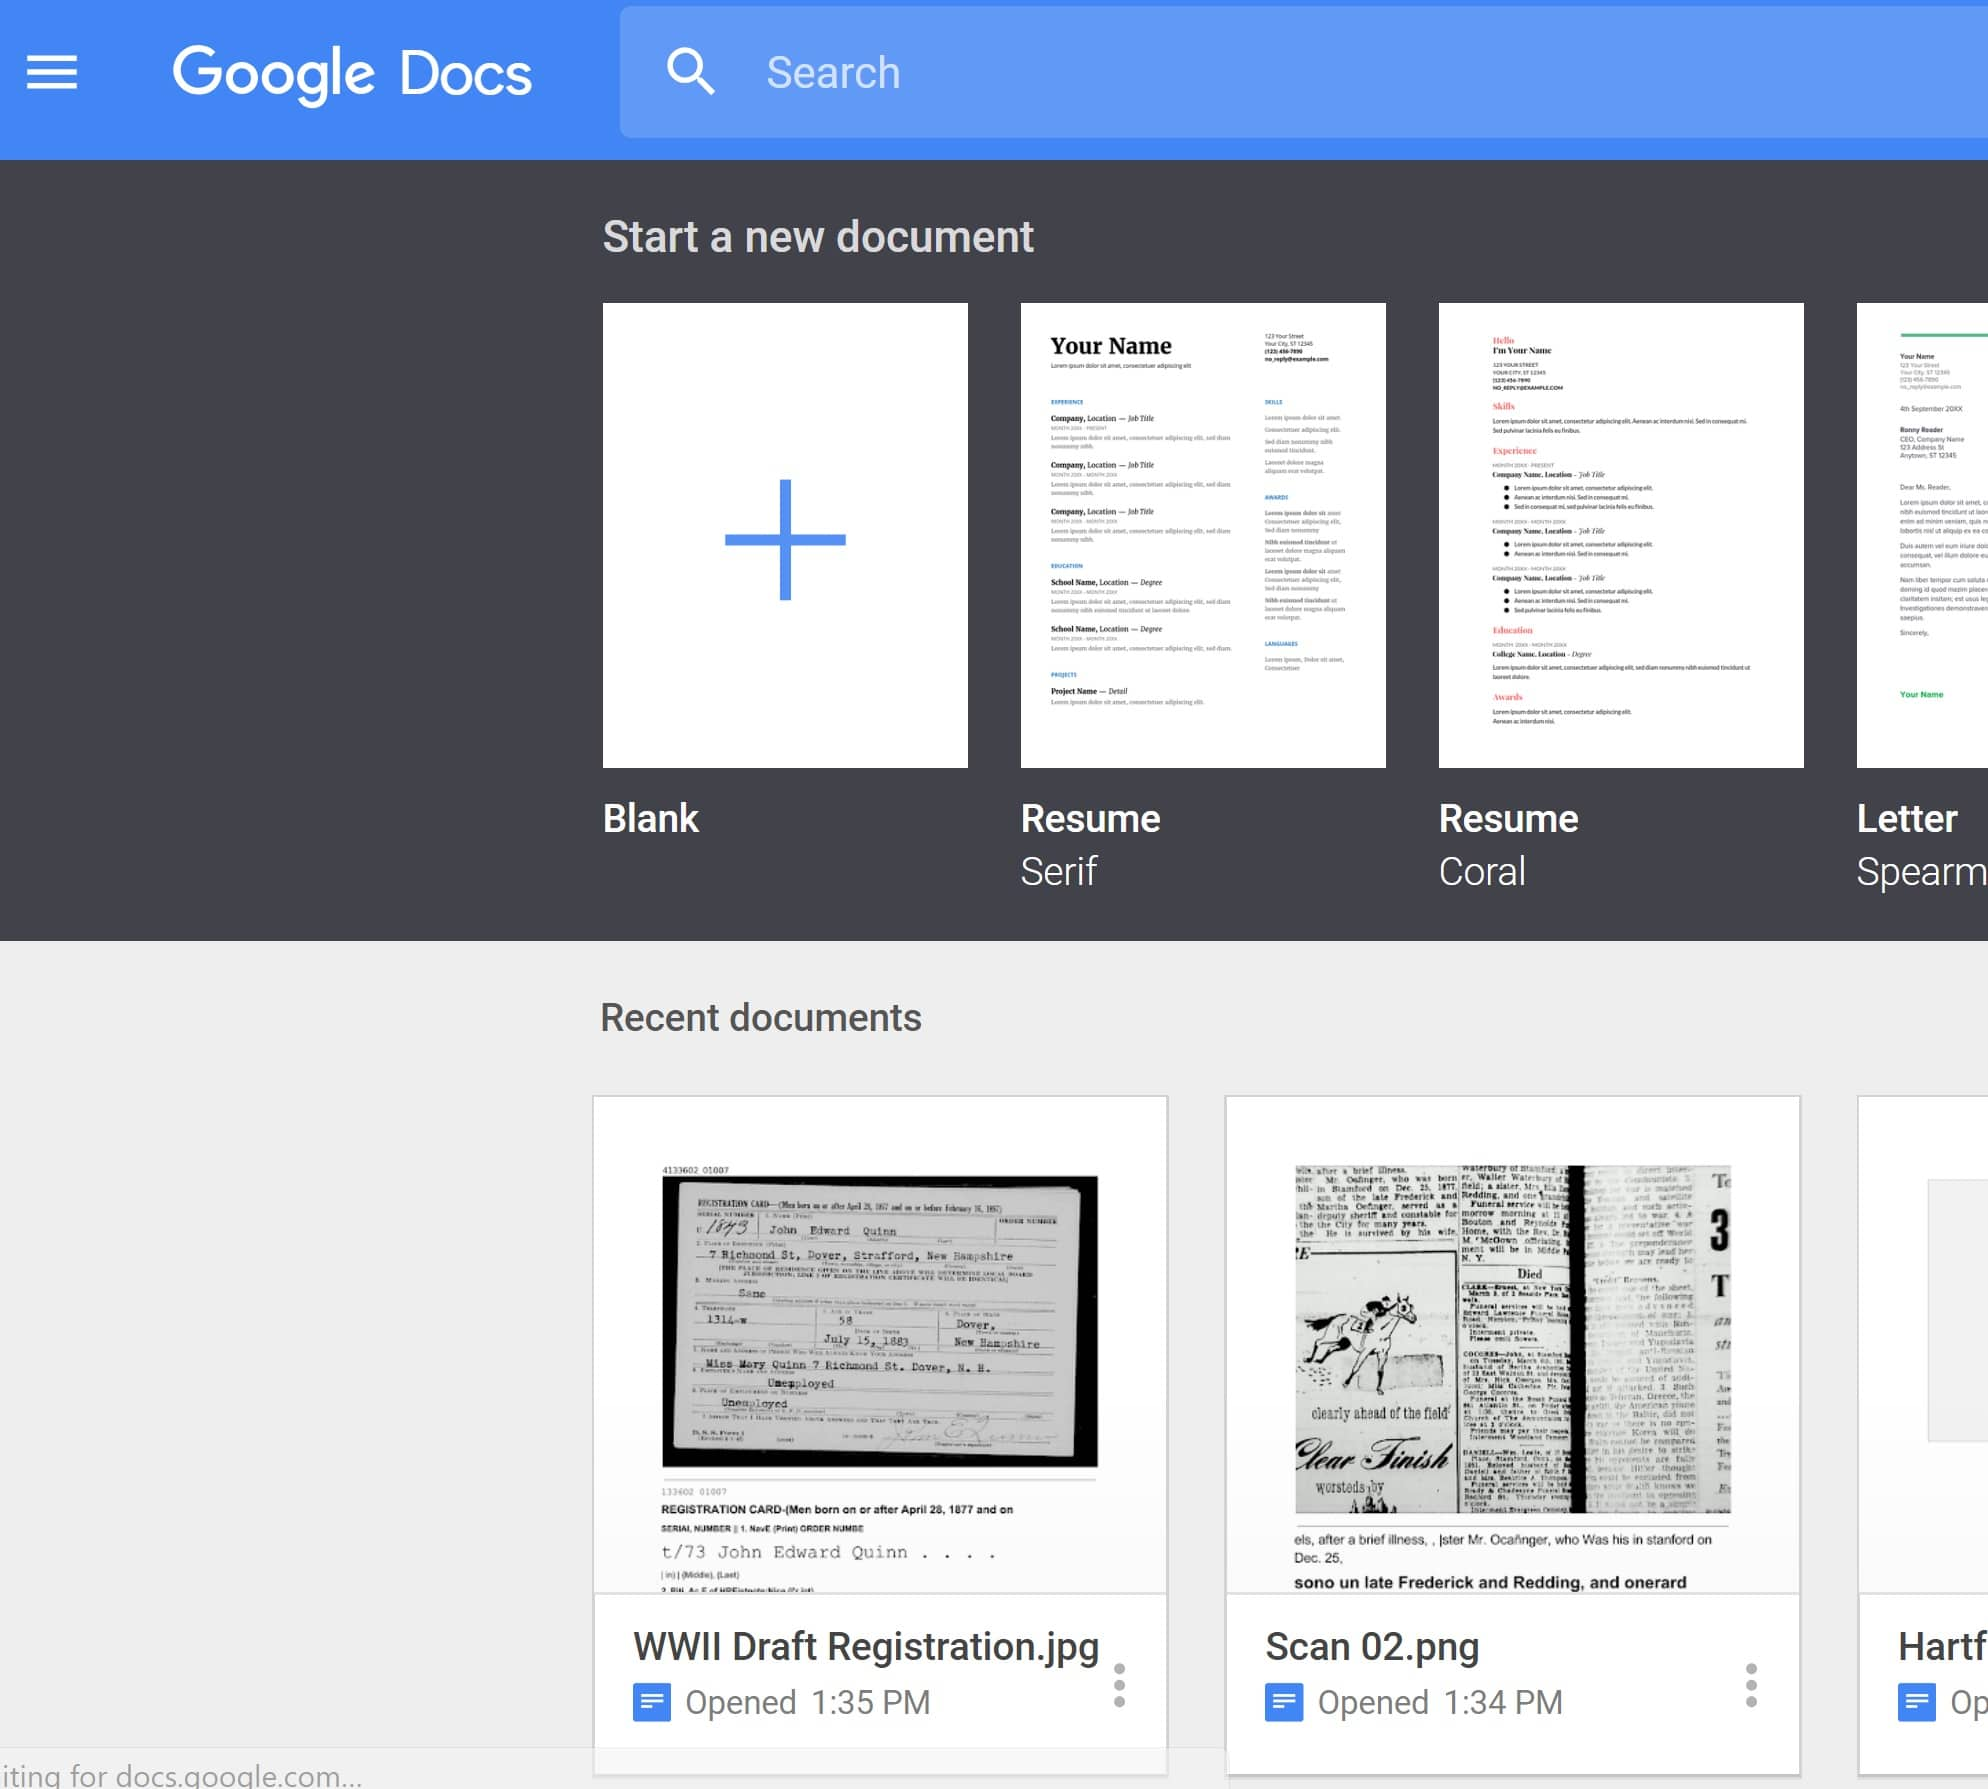 How Explore from Google Docs Can Help You Research Your Ancestors